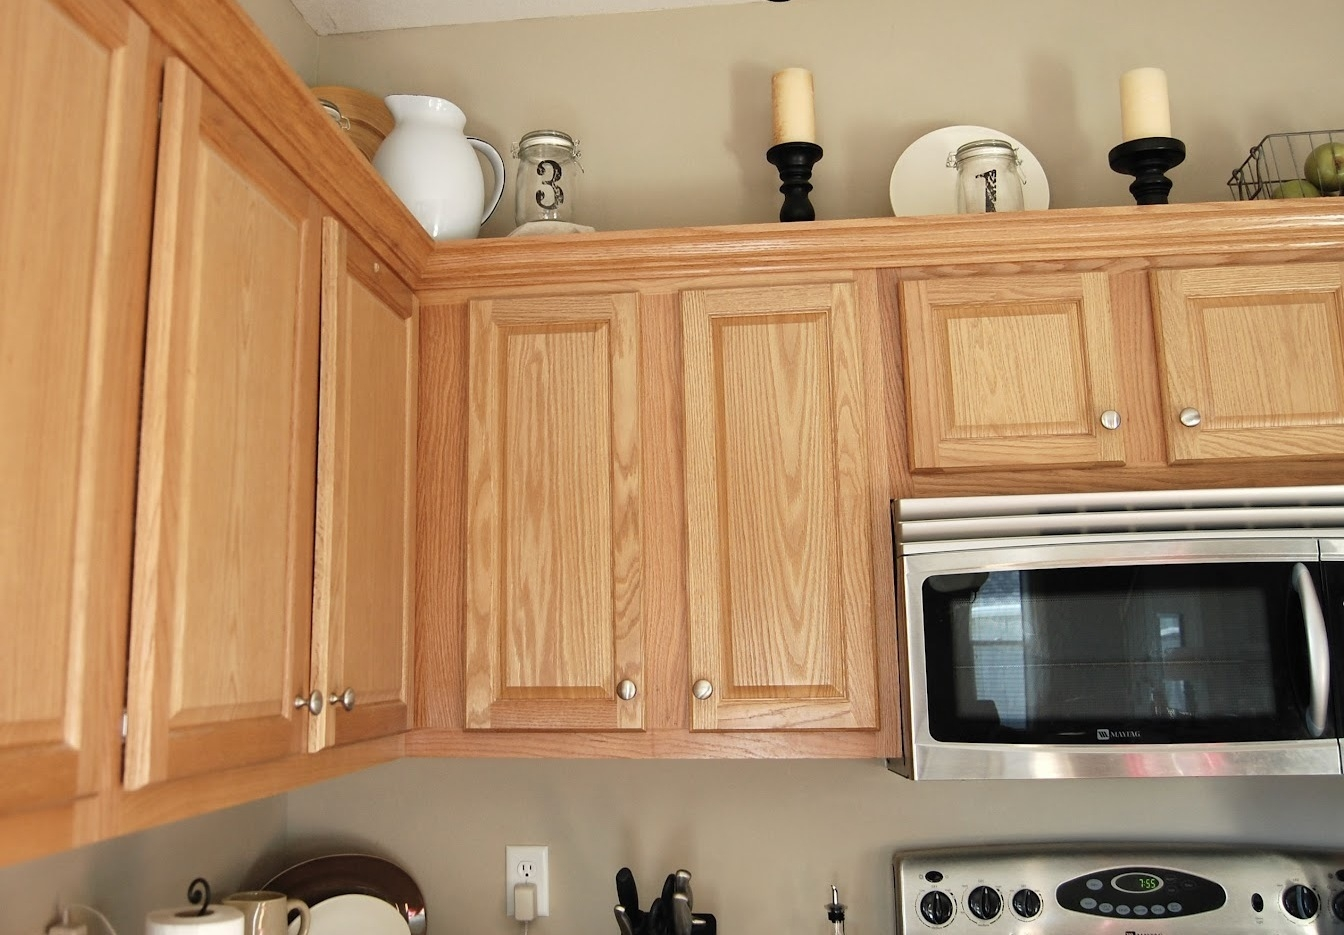 Permalink to Pictures Of Kitchen Cabinets With Knobs